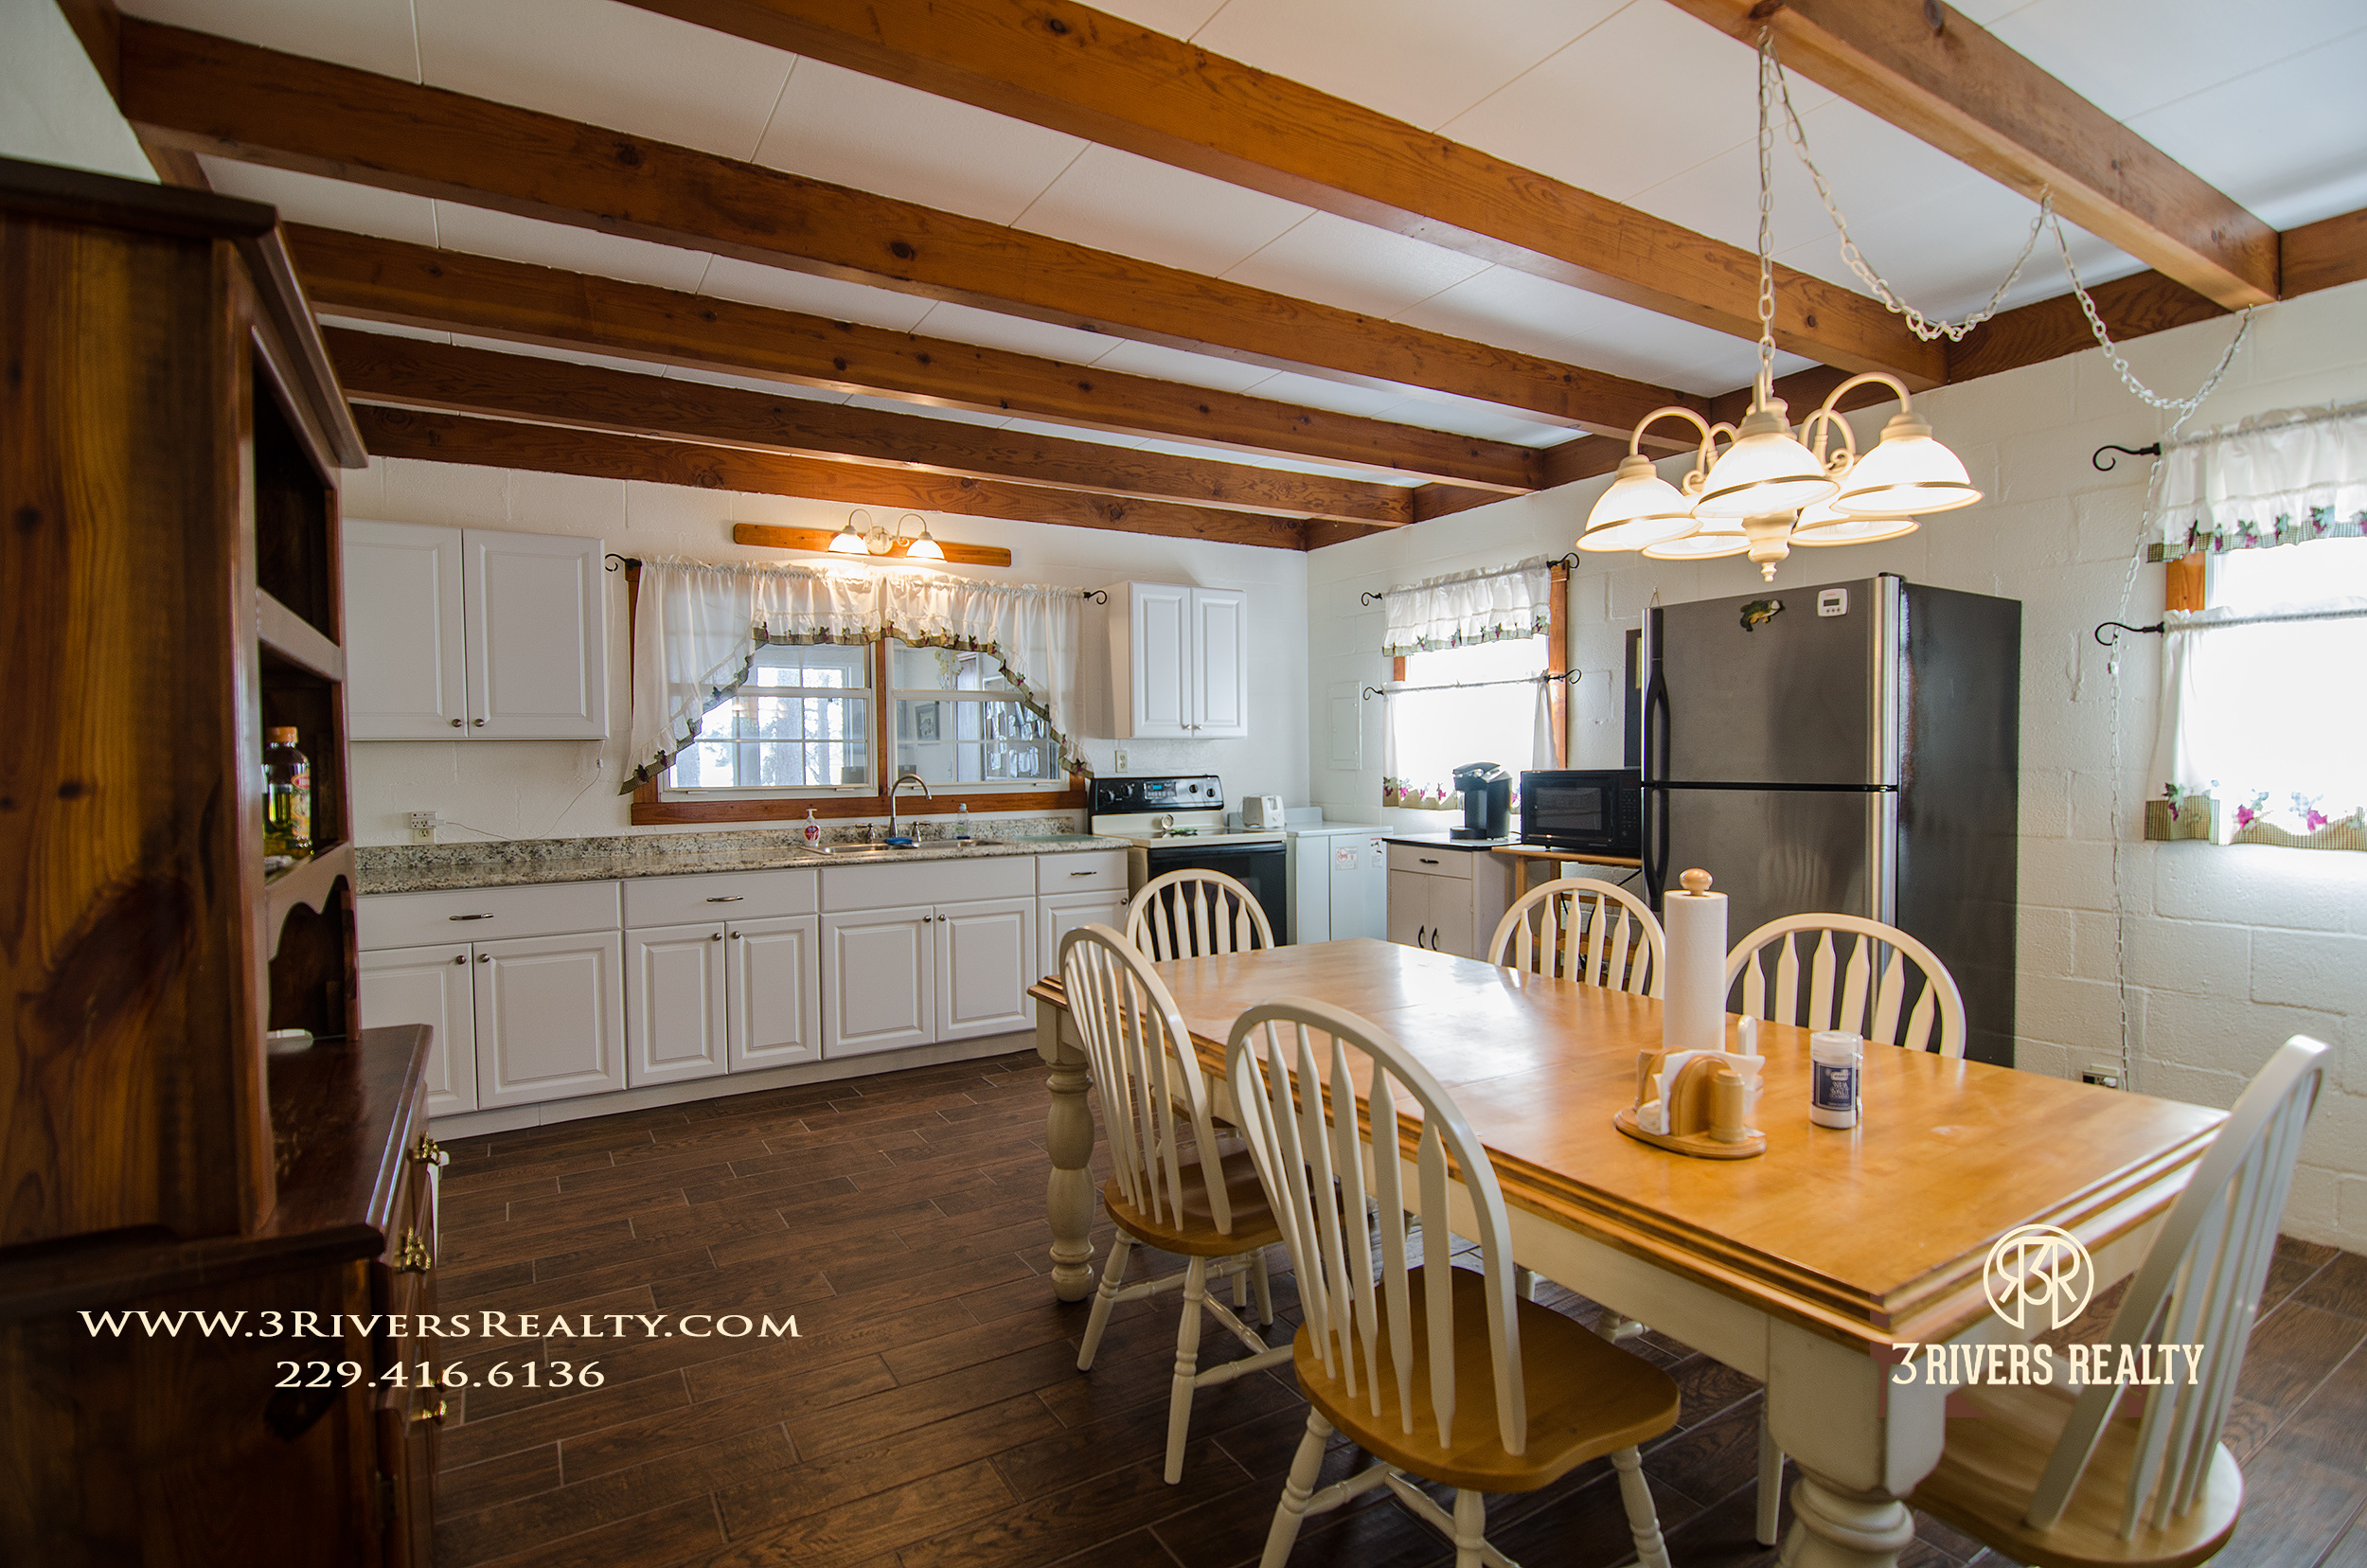 3riversrealty_vacation-home_river-house_mills-brock_lake_waterfront_georgia_southern_recreation_canoeing_tourism_kitchen2.jpg